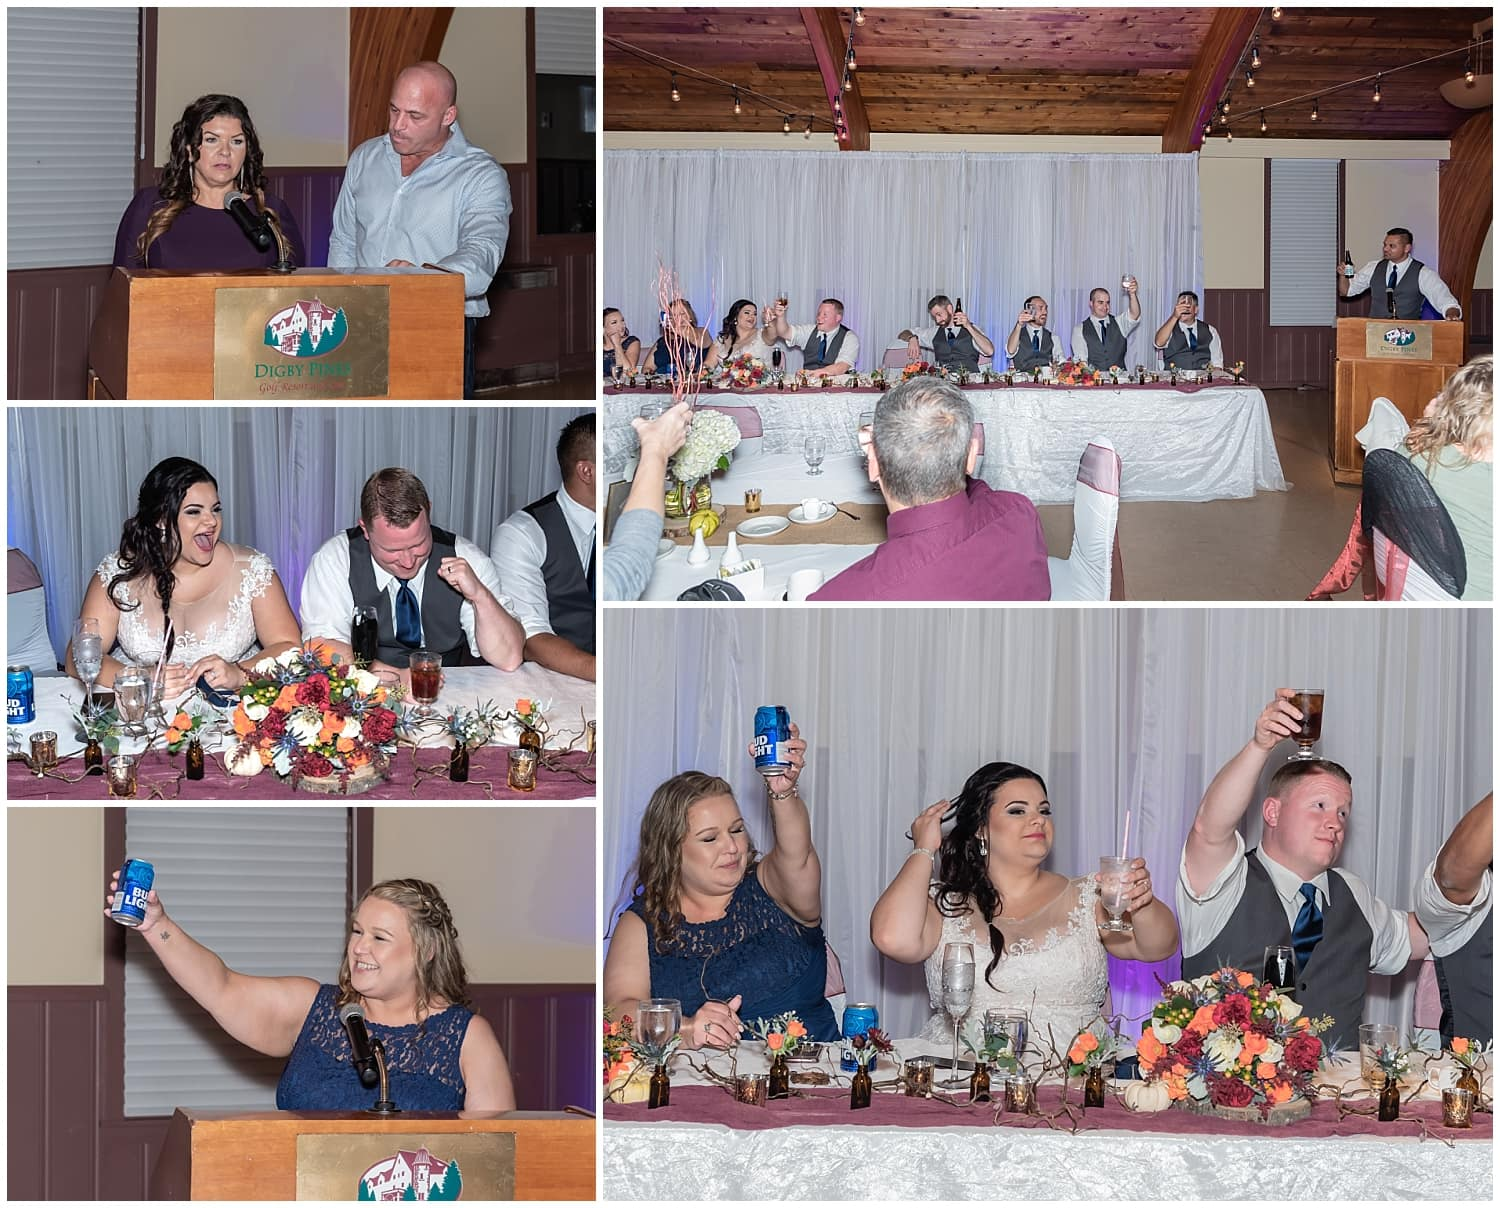 The wedding reception speeches at Digby Pines Resort Hotel in Digby Nova Scotia.